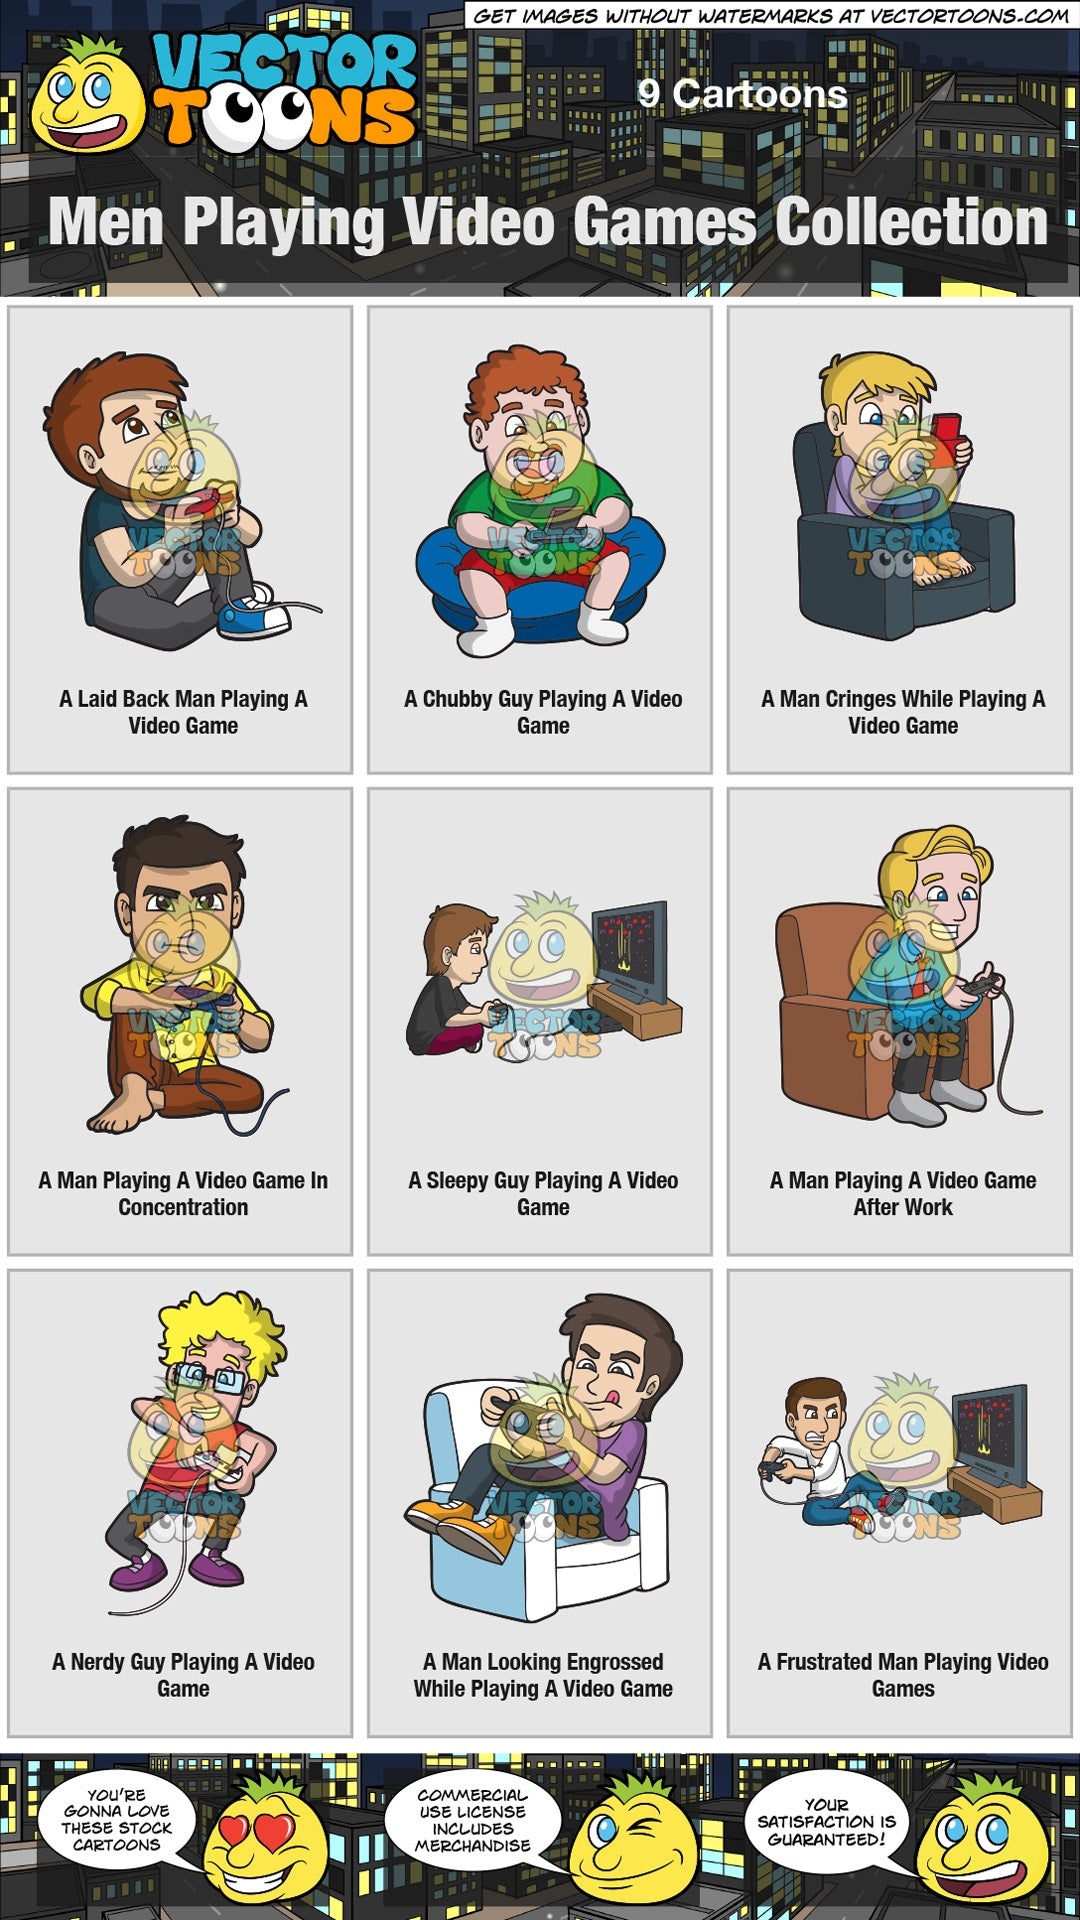 Men Playing Video Games Collection